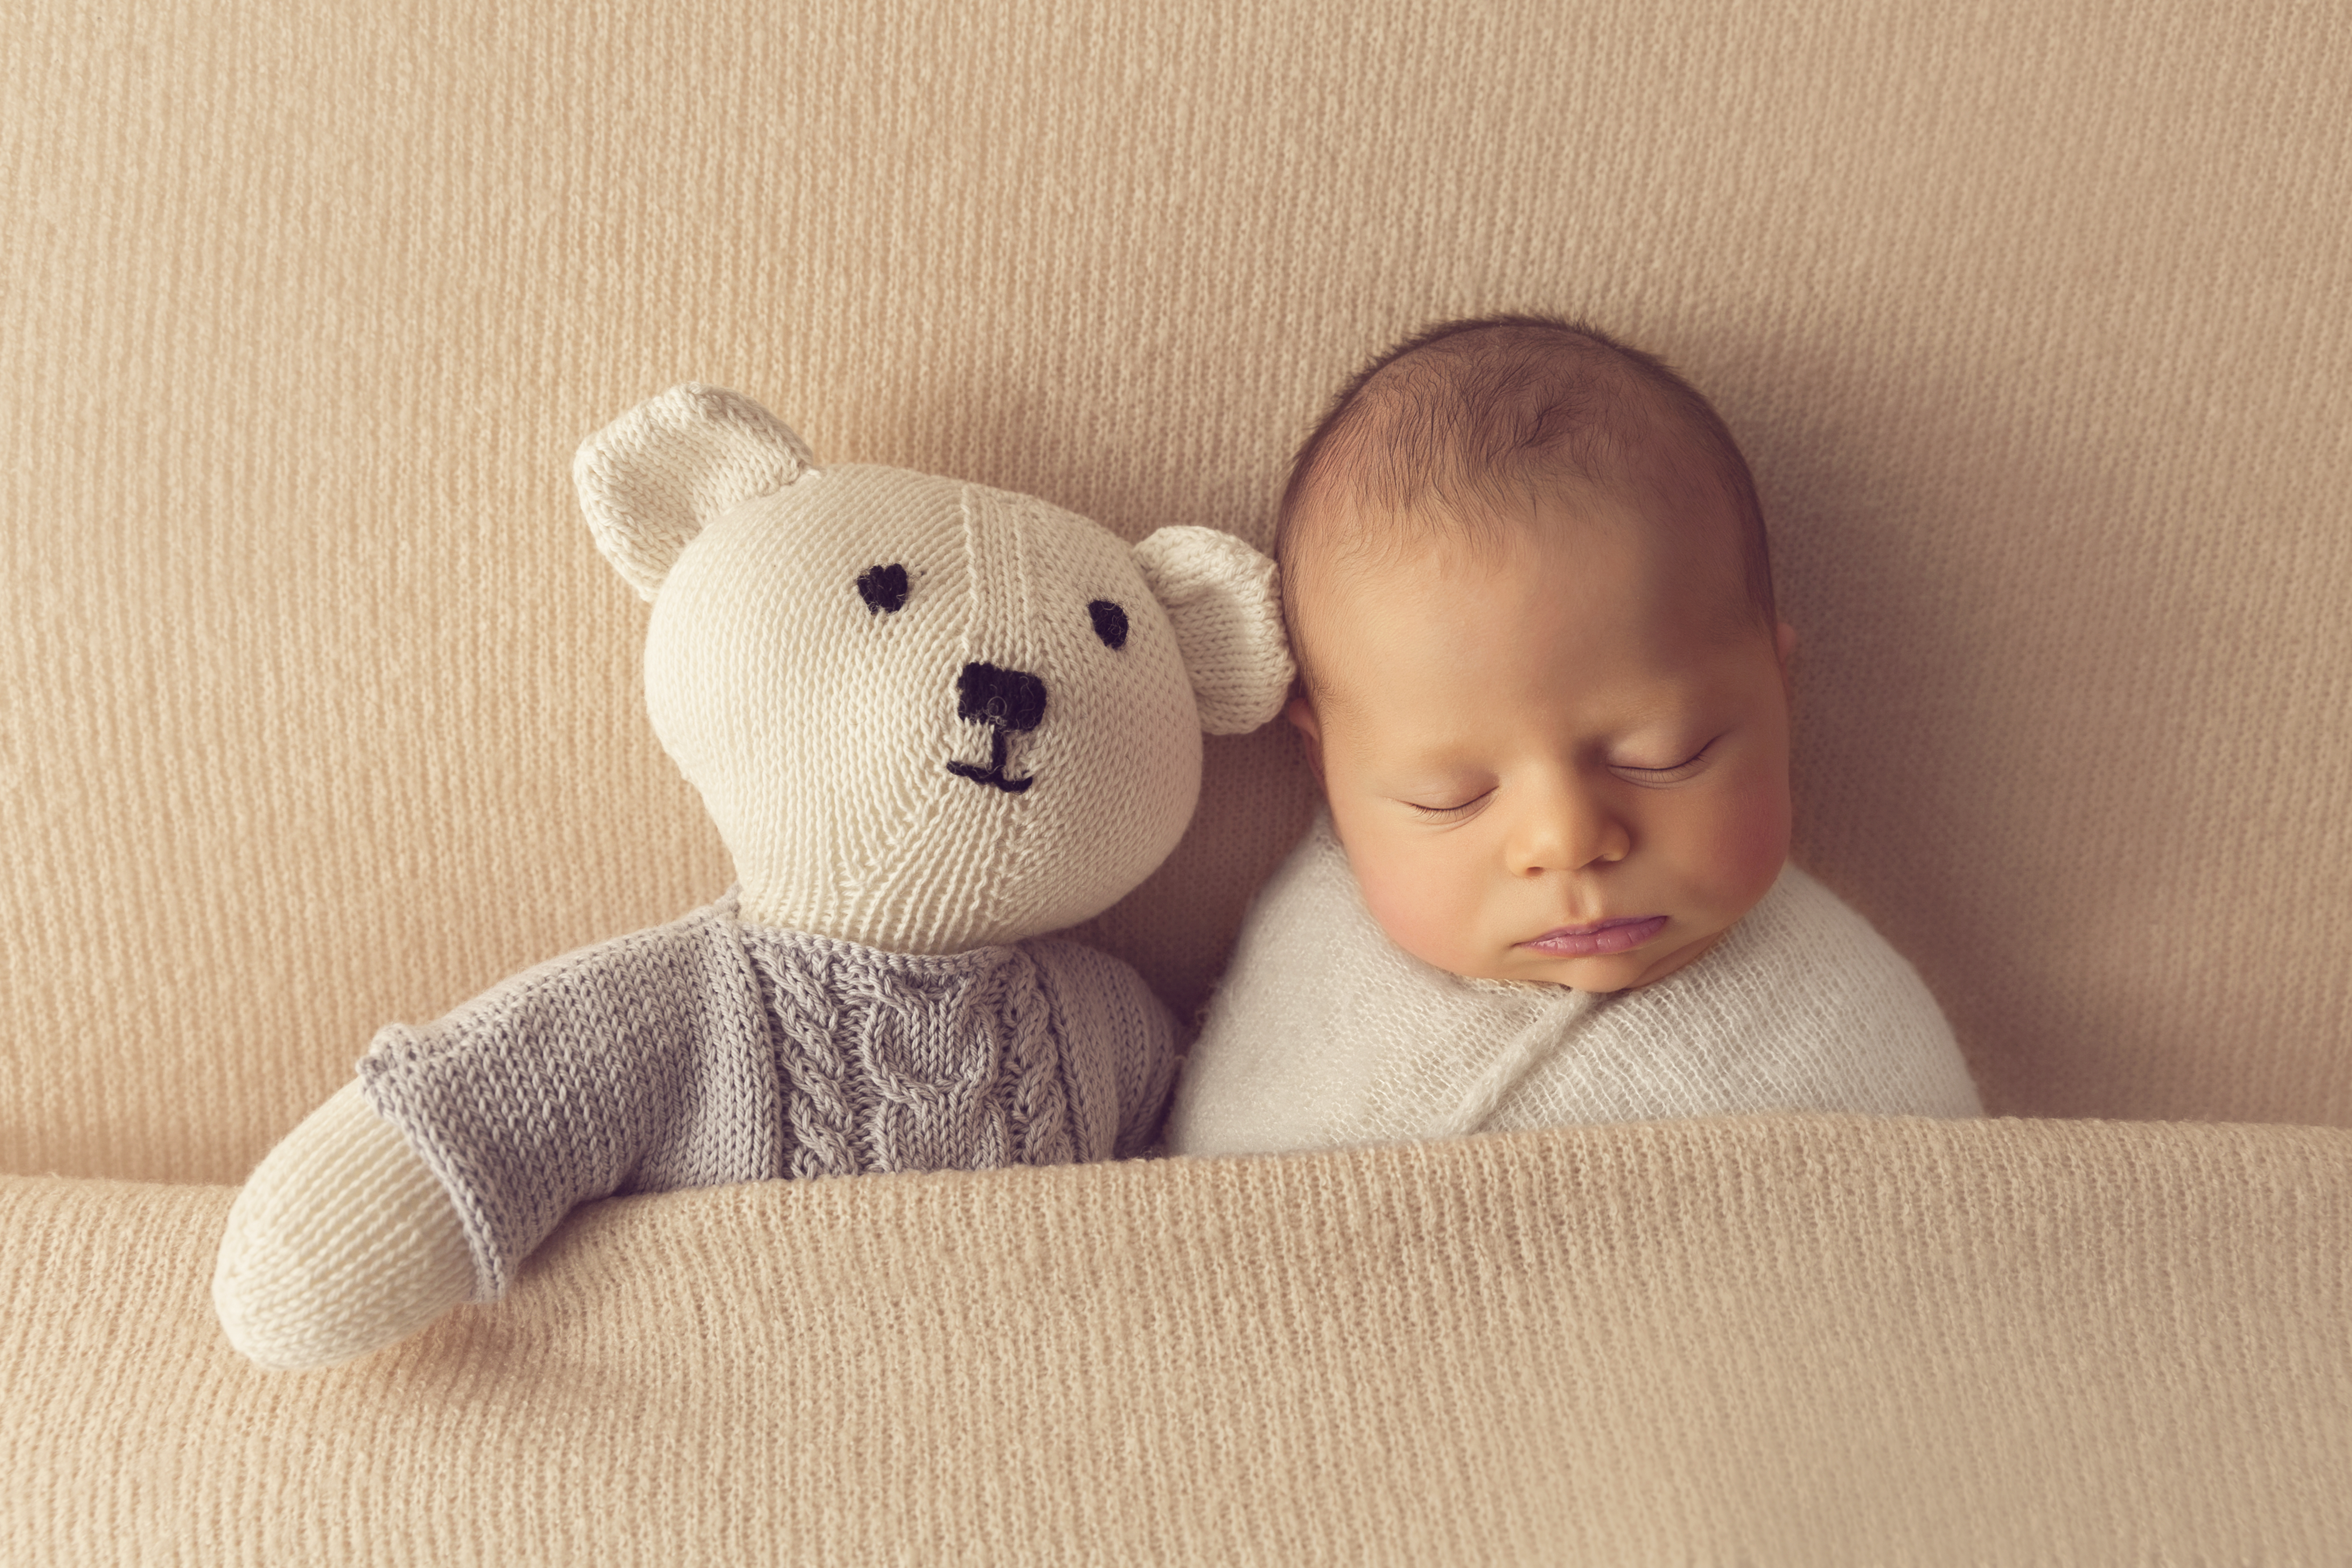 newborn photographed on cream blanket with teddy